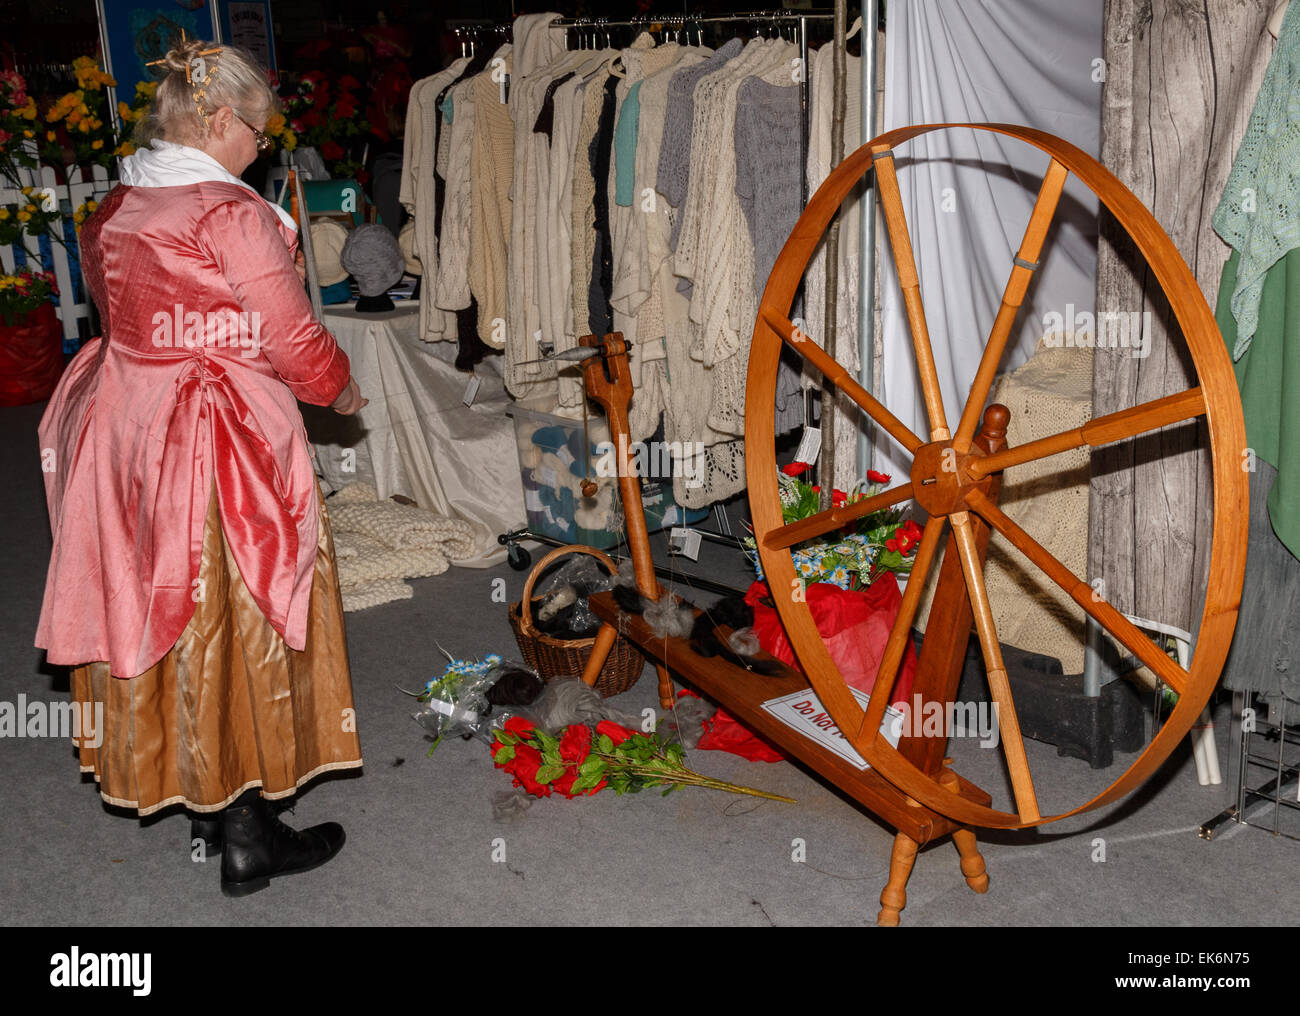 Woman (50-60 years) spinner in traditional costume using a hand driven spinning wheel to spin alpaca yarn - Stock Image